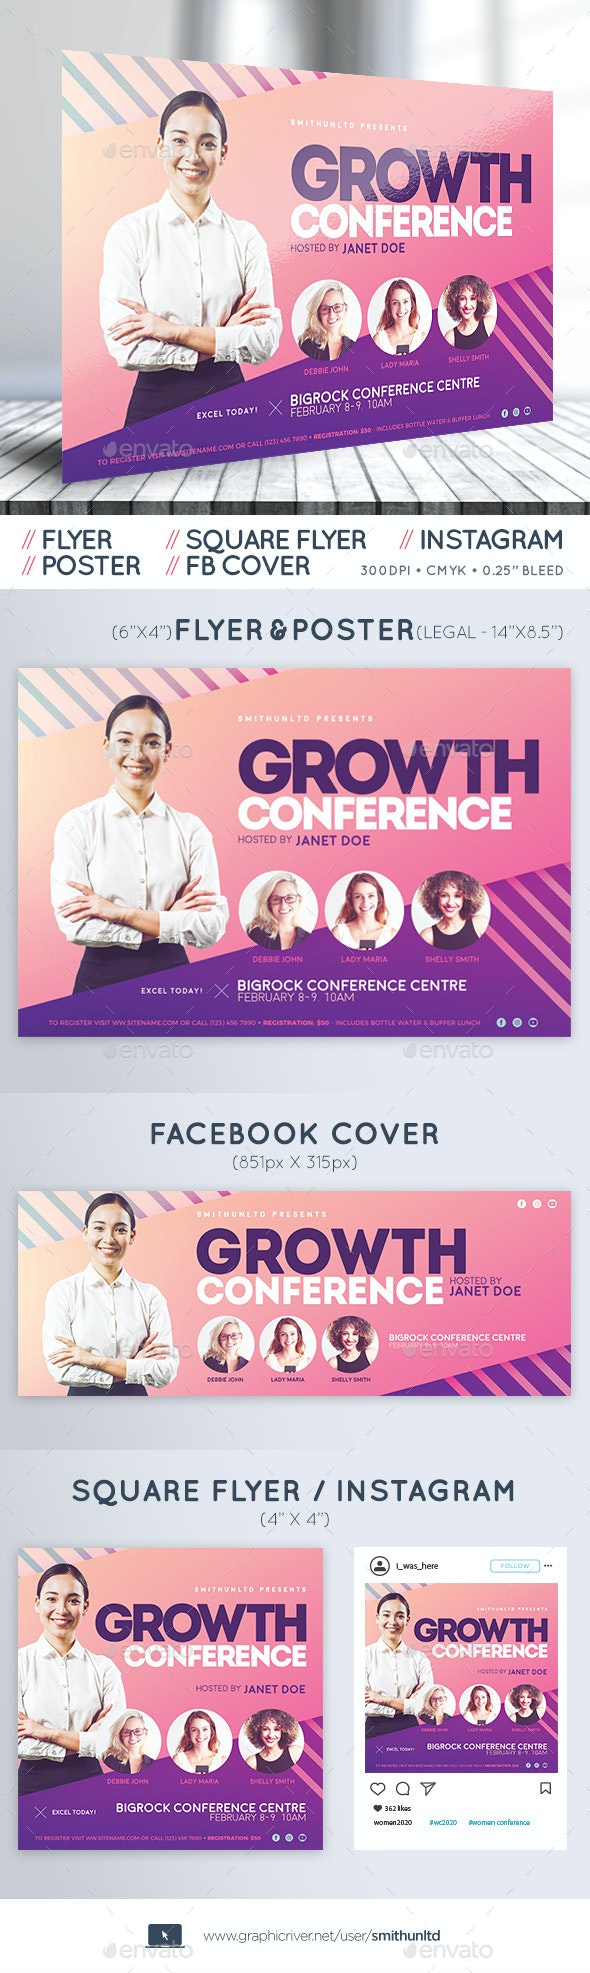 Women's Conference Flyer - Growth - Complete Set - Miscellaneous Events